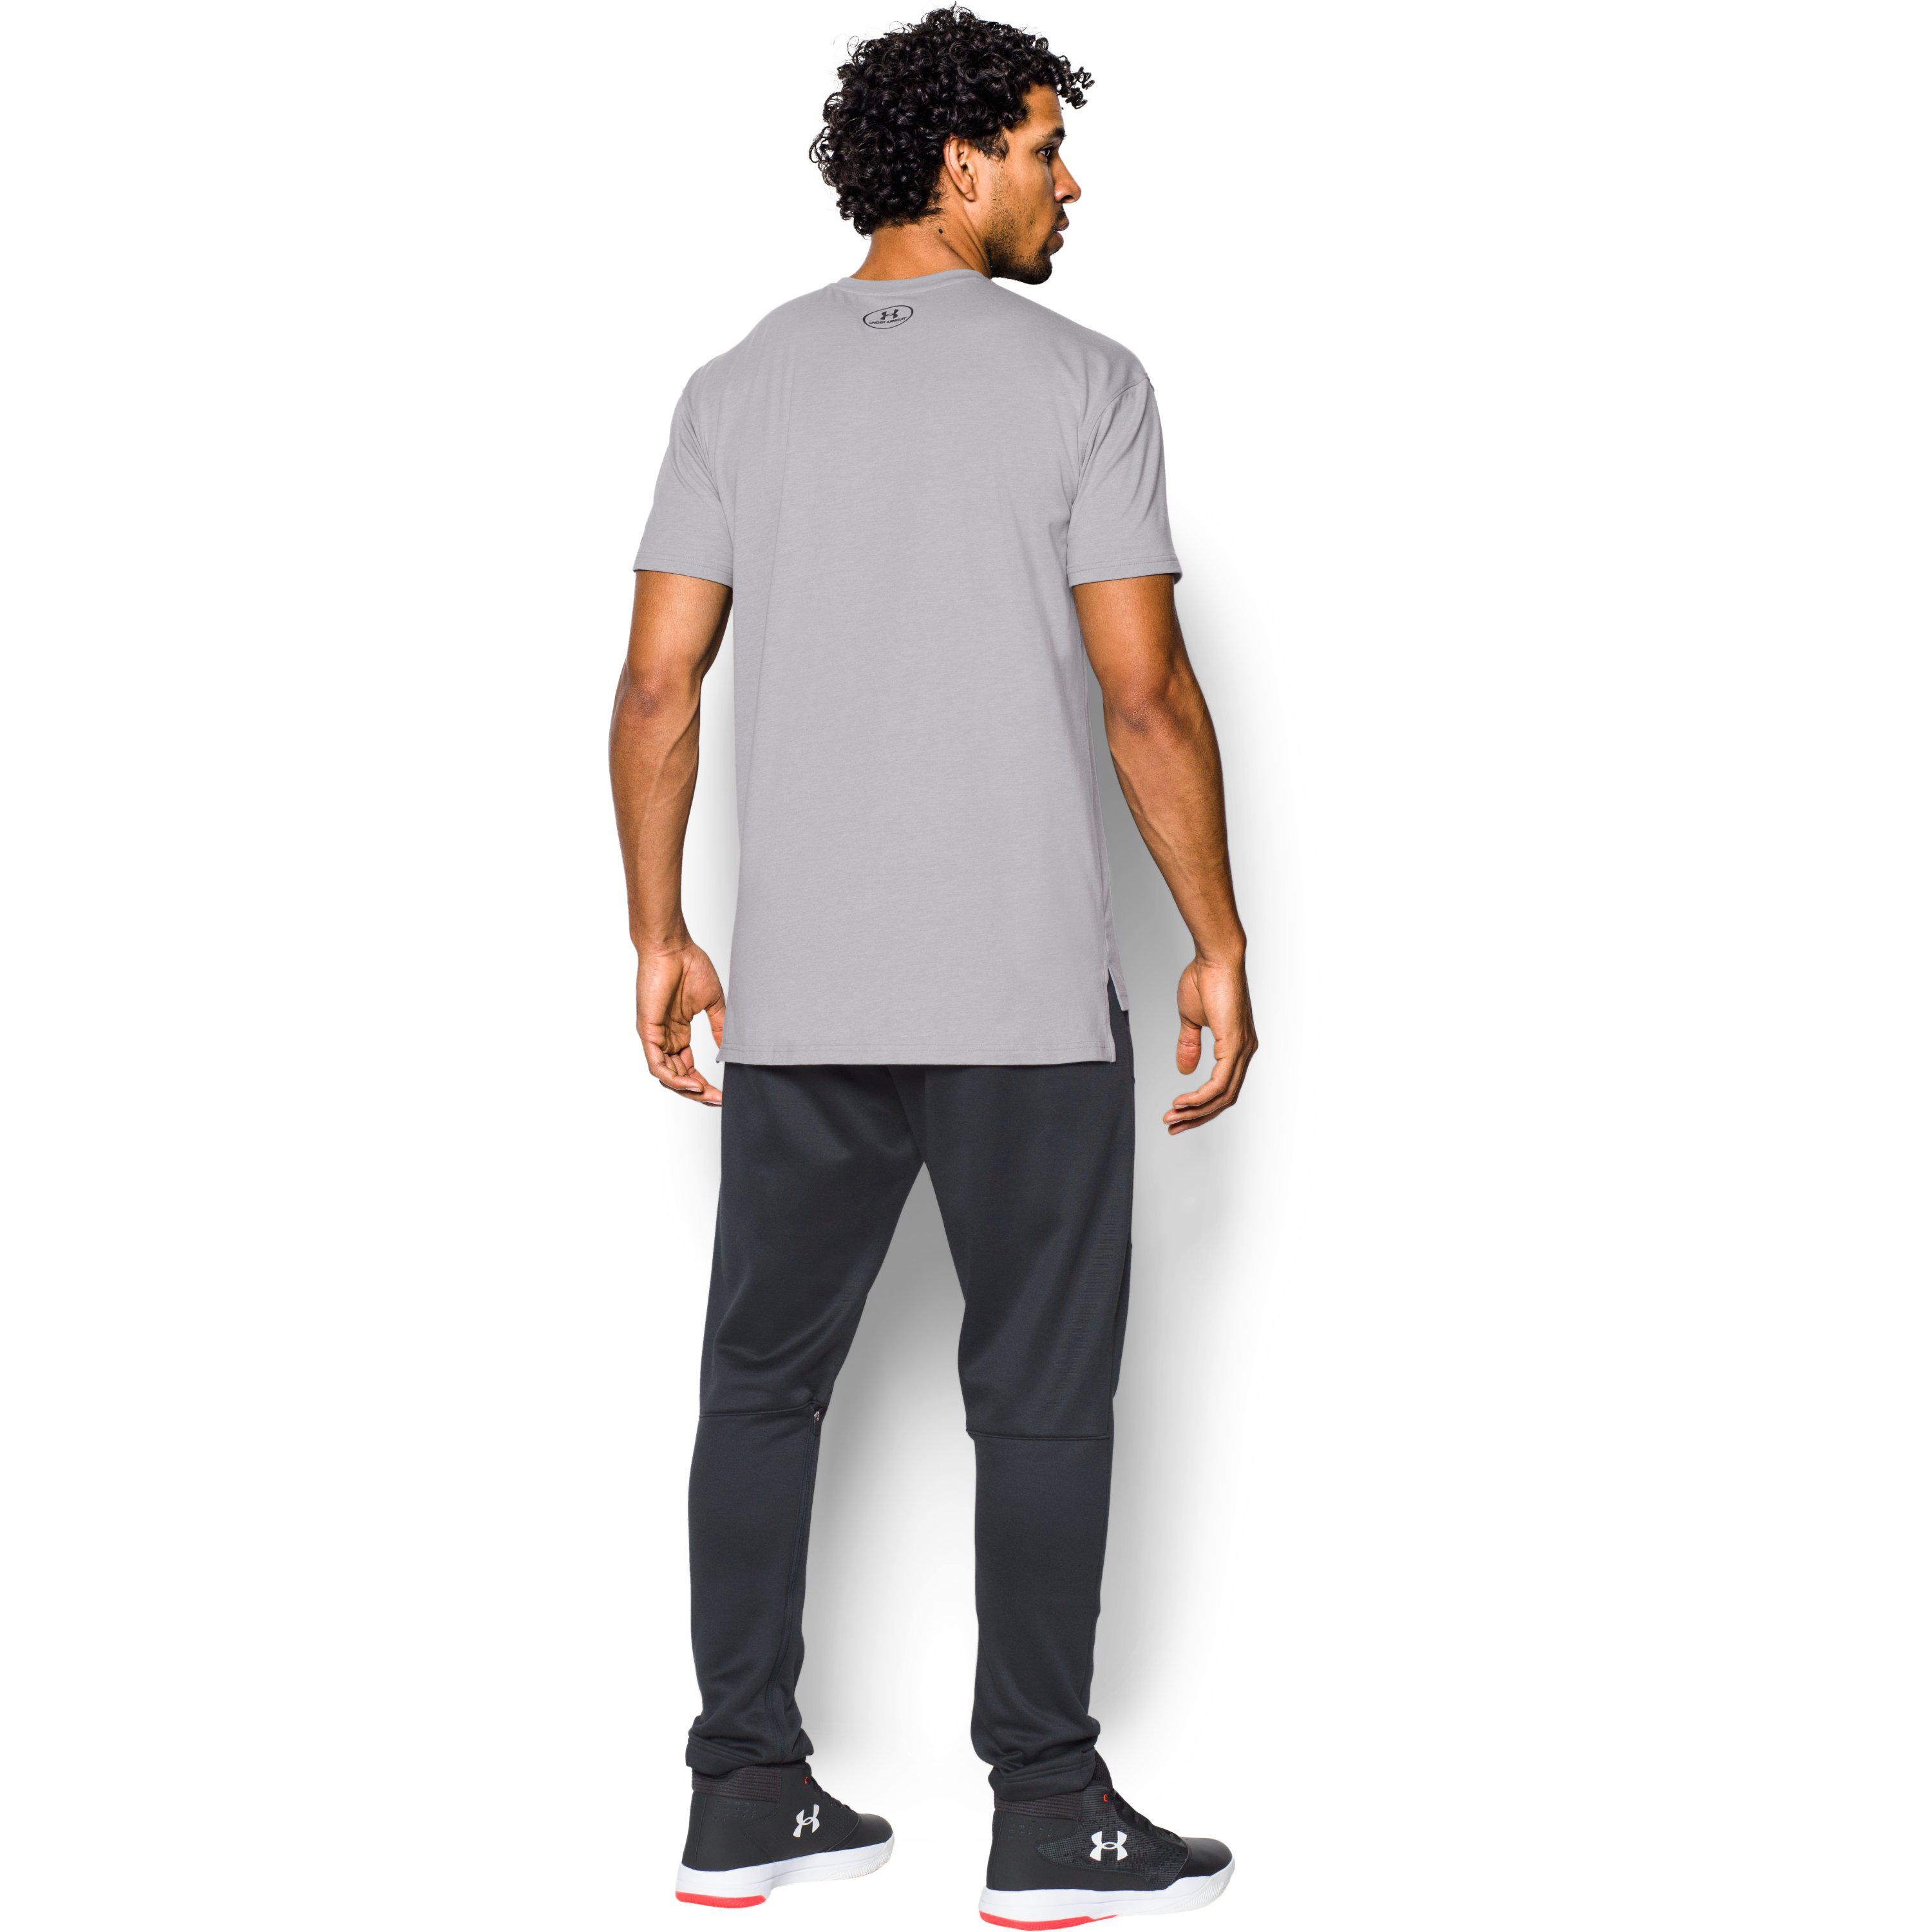 Burgundy Large New Under Armour UA Men/'s Pursuit Stealth Thermal Top